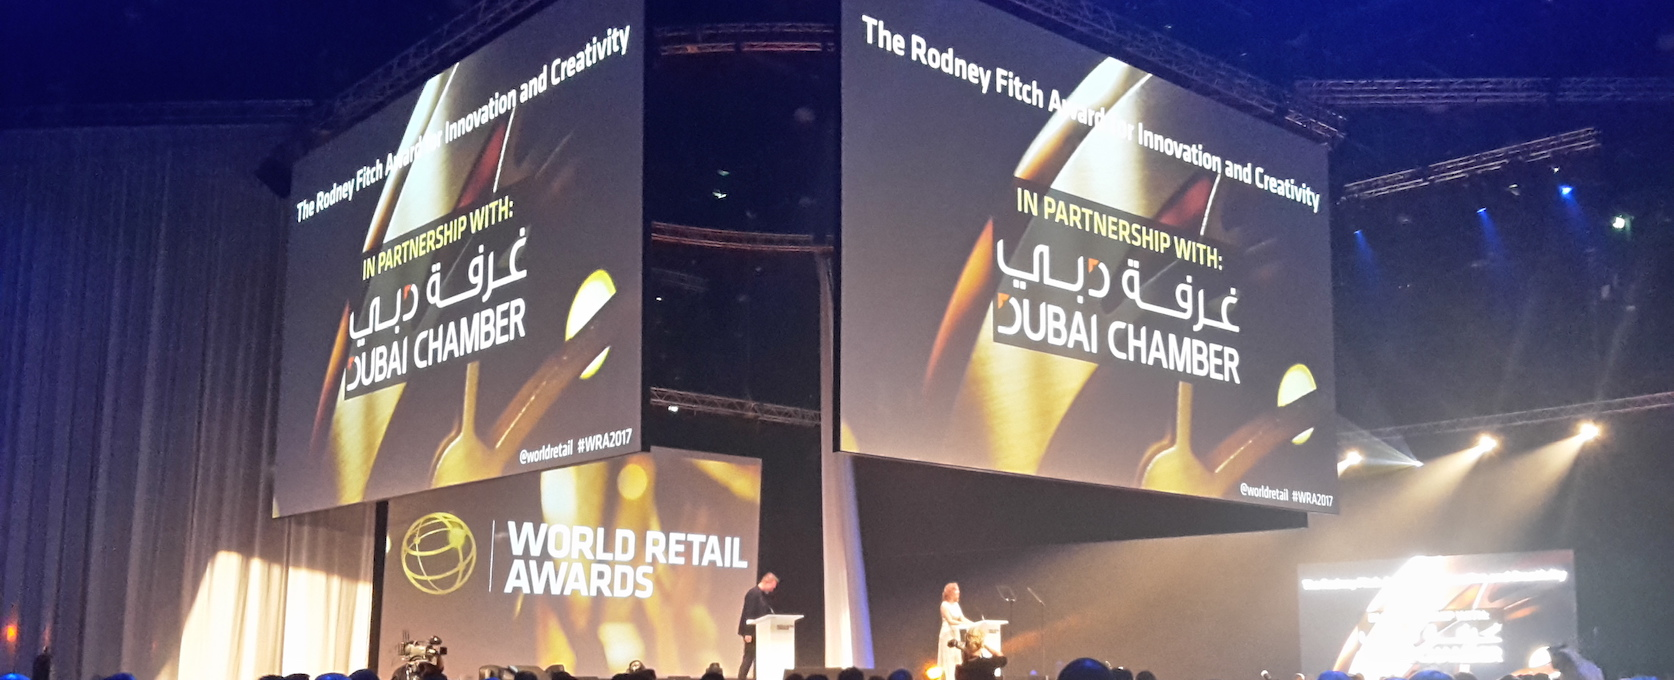 Highlights from the World Retail Congress 2017